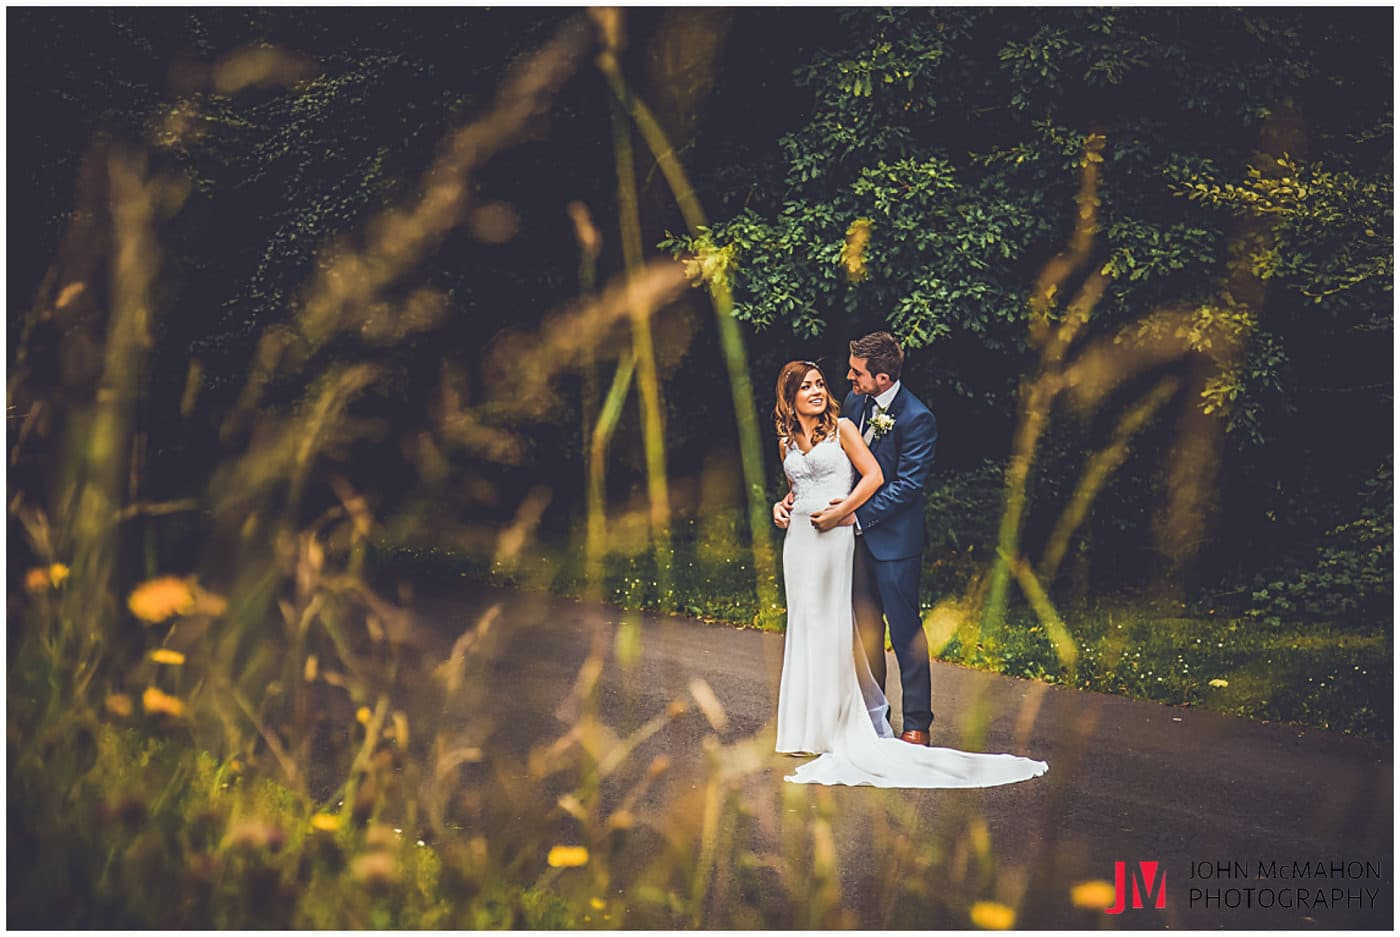 Linda & Adrian's Shearwater Hotel wedding in Ballinasloe Co Galway